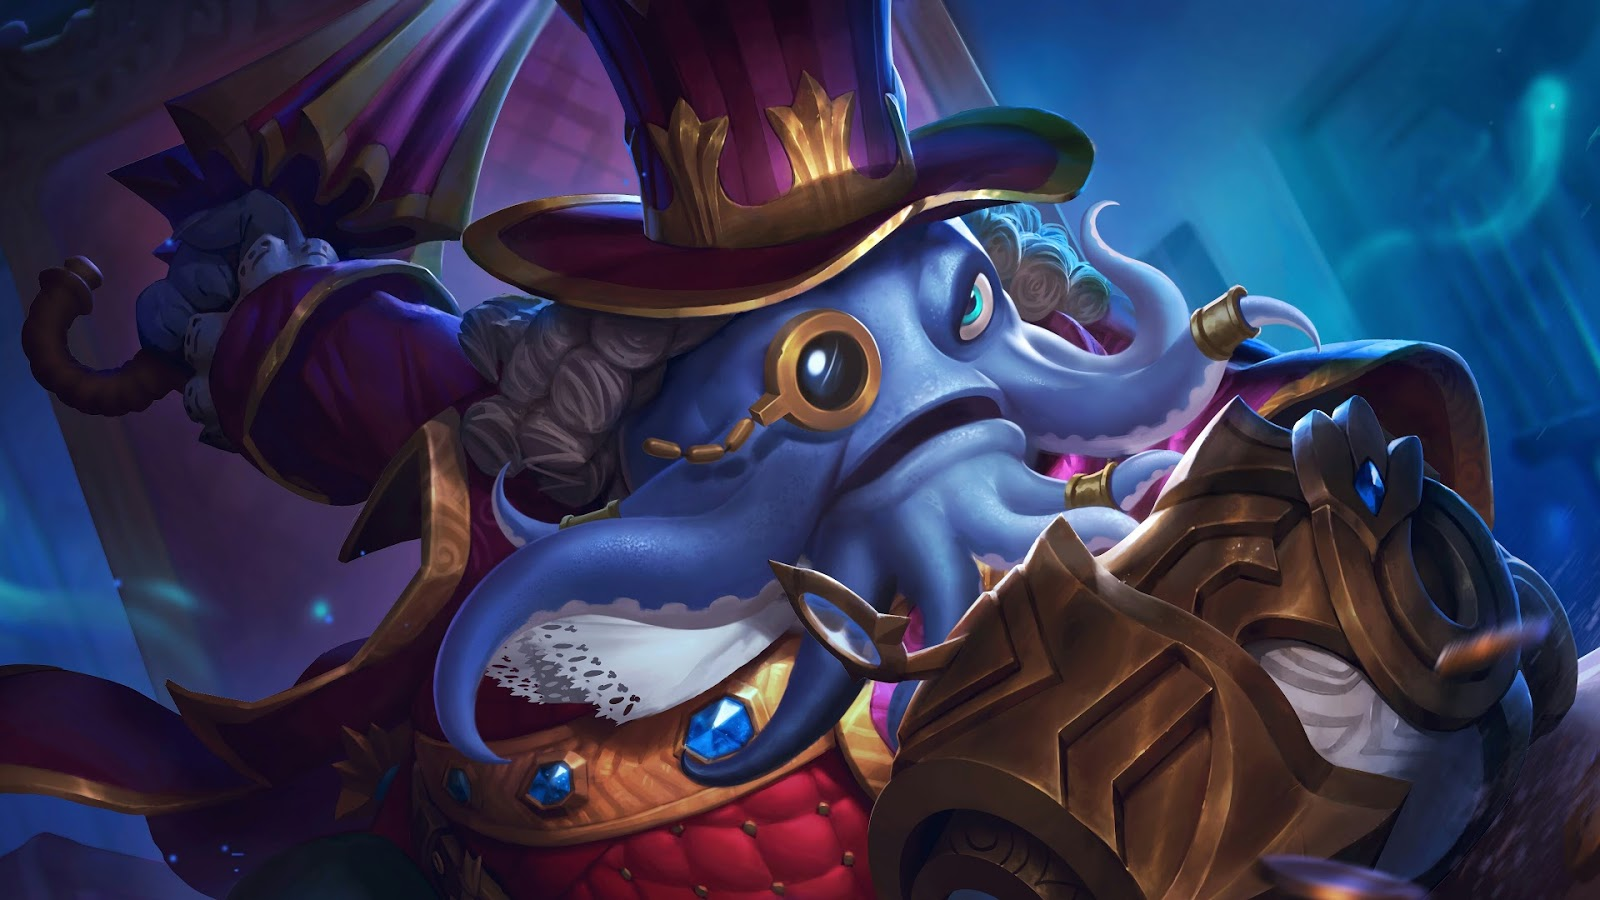 Wallpaper Bane Count Dracula Mobile Legends Full HD for PC